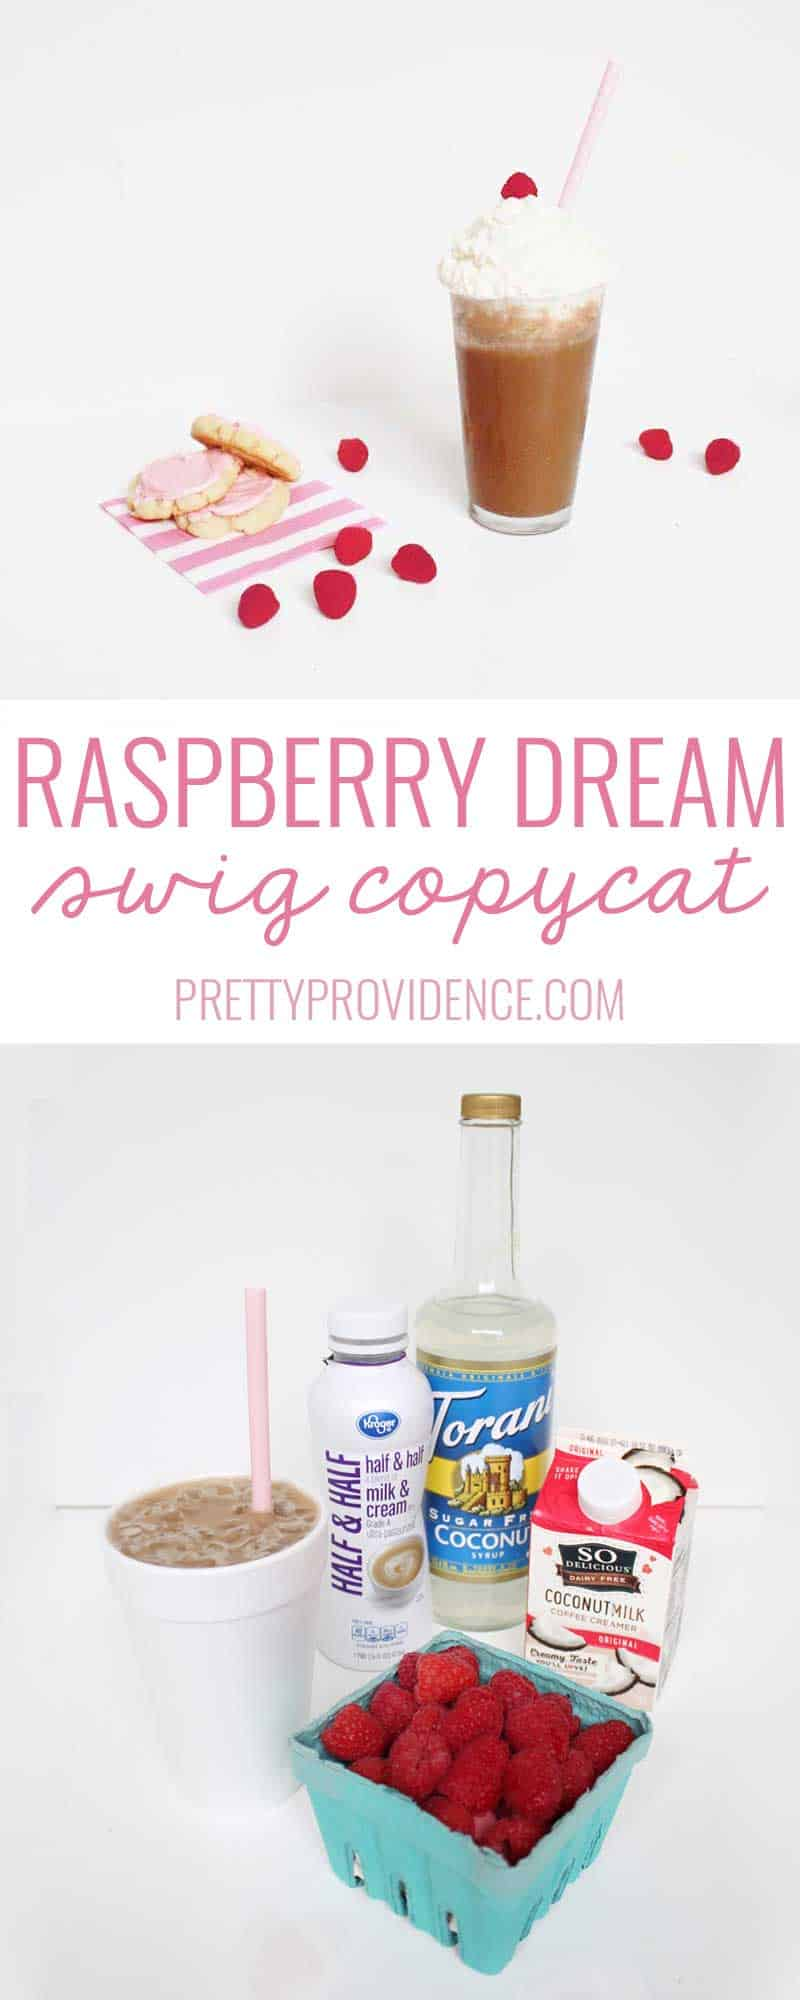 You HAVE to try this great Swig copycat! Dr. Pepper + Raspberry Puree + Coconut Cream and it's HEAVEN.